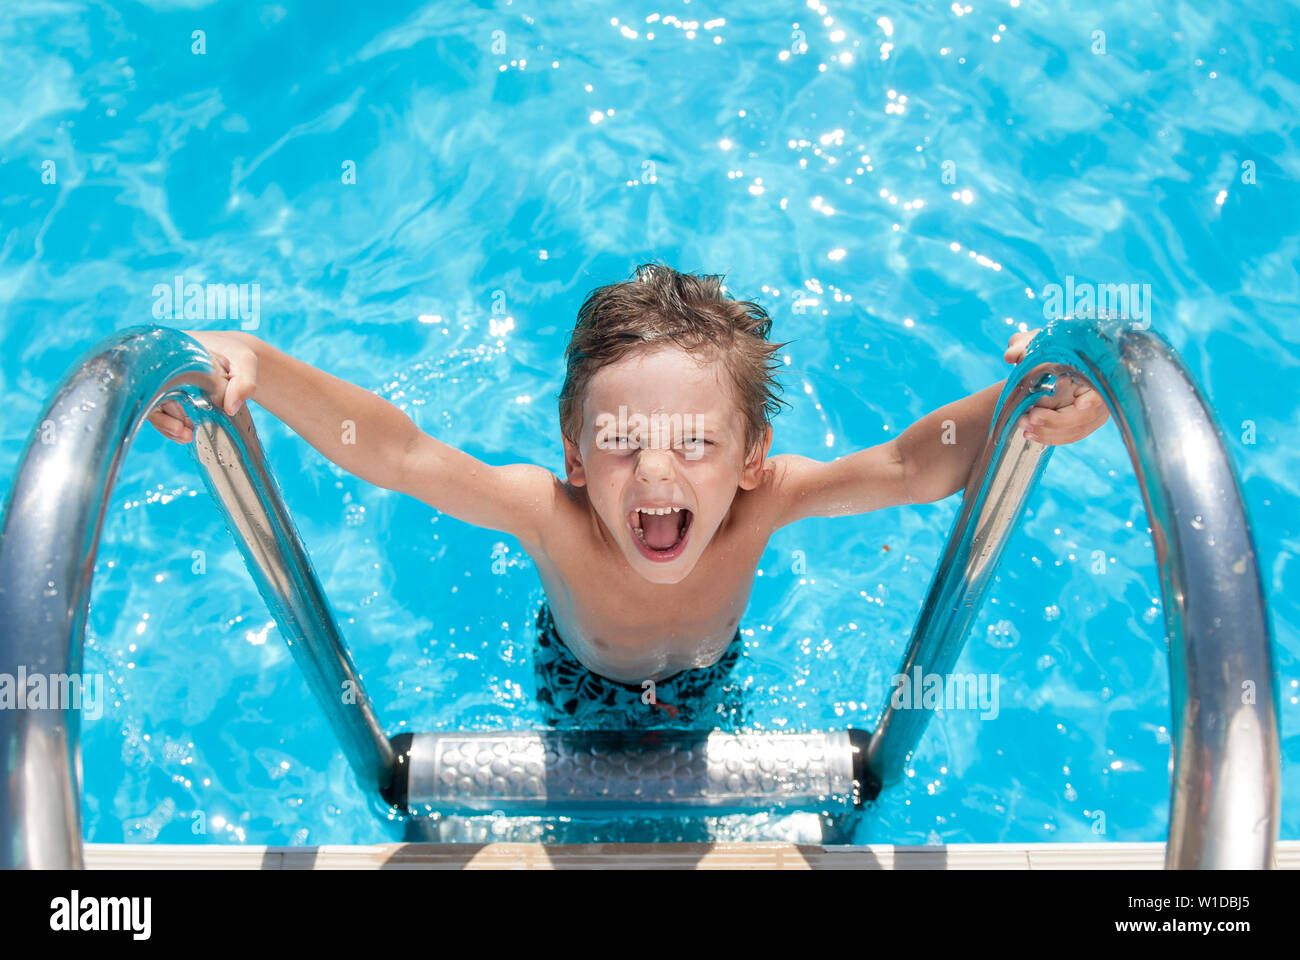 happy beautiful small shouting kid with wet hair standing on chrome handrail in fresh water swimming turquoise outdoors pool in sunny summer holiday d Stock Photo